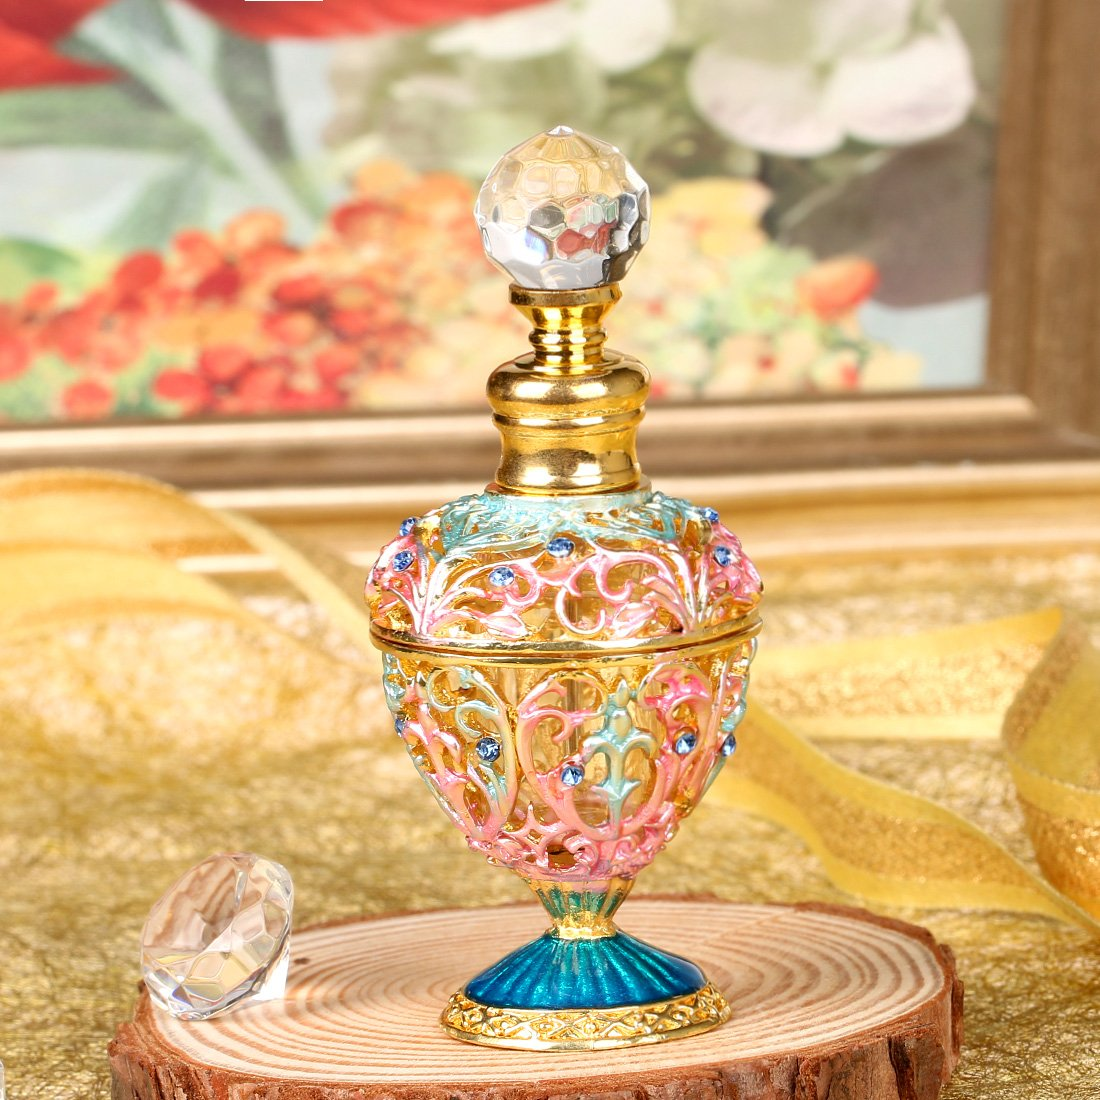 YUFENG 5ml Restoring Ancient Ways Hollow-out Rattan Flower Perfume Bottles Empty Refillable 5